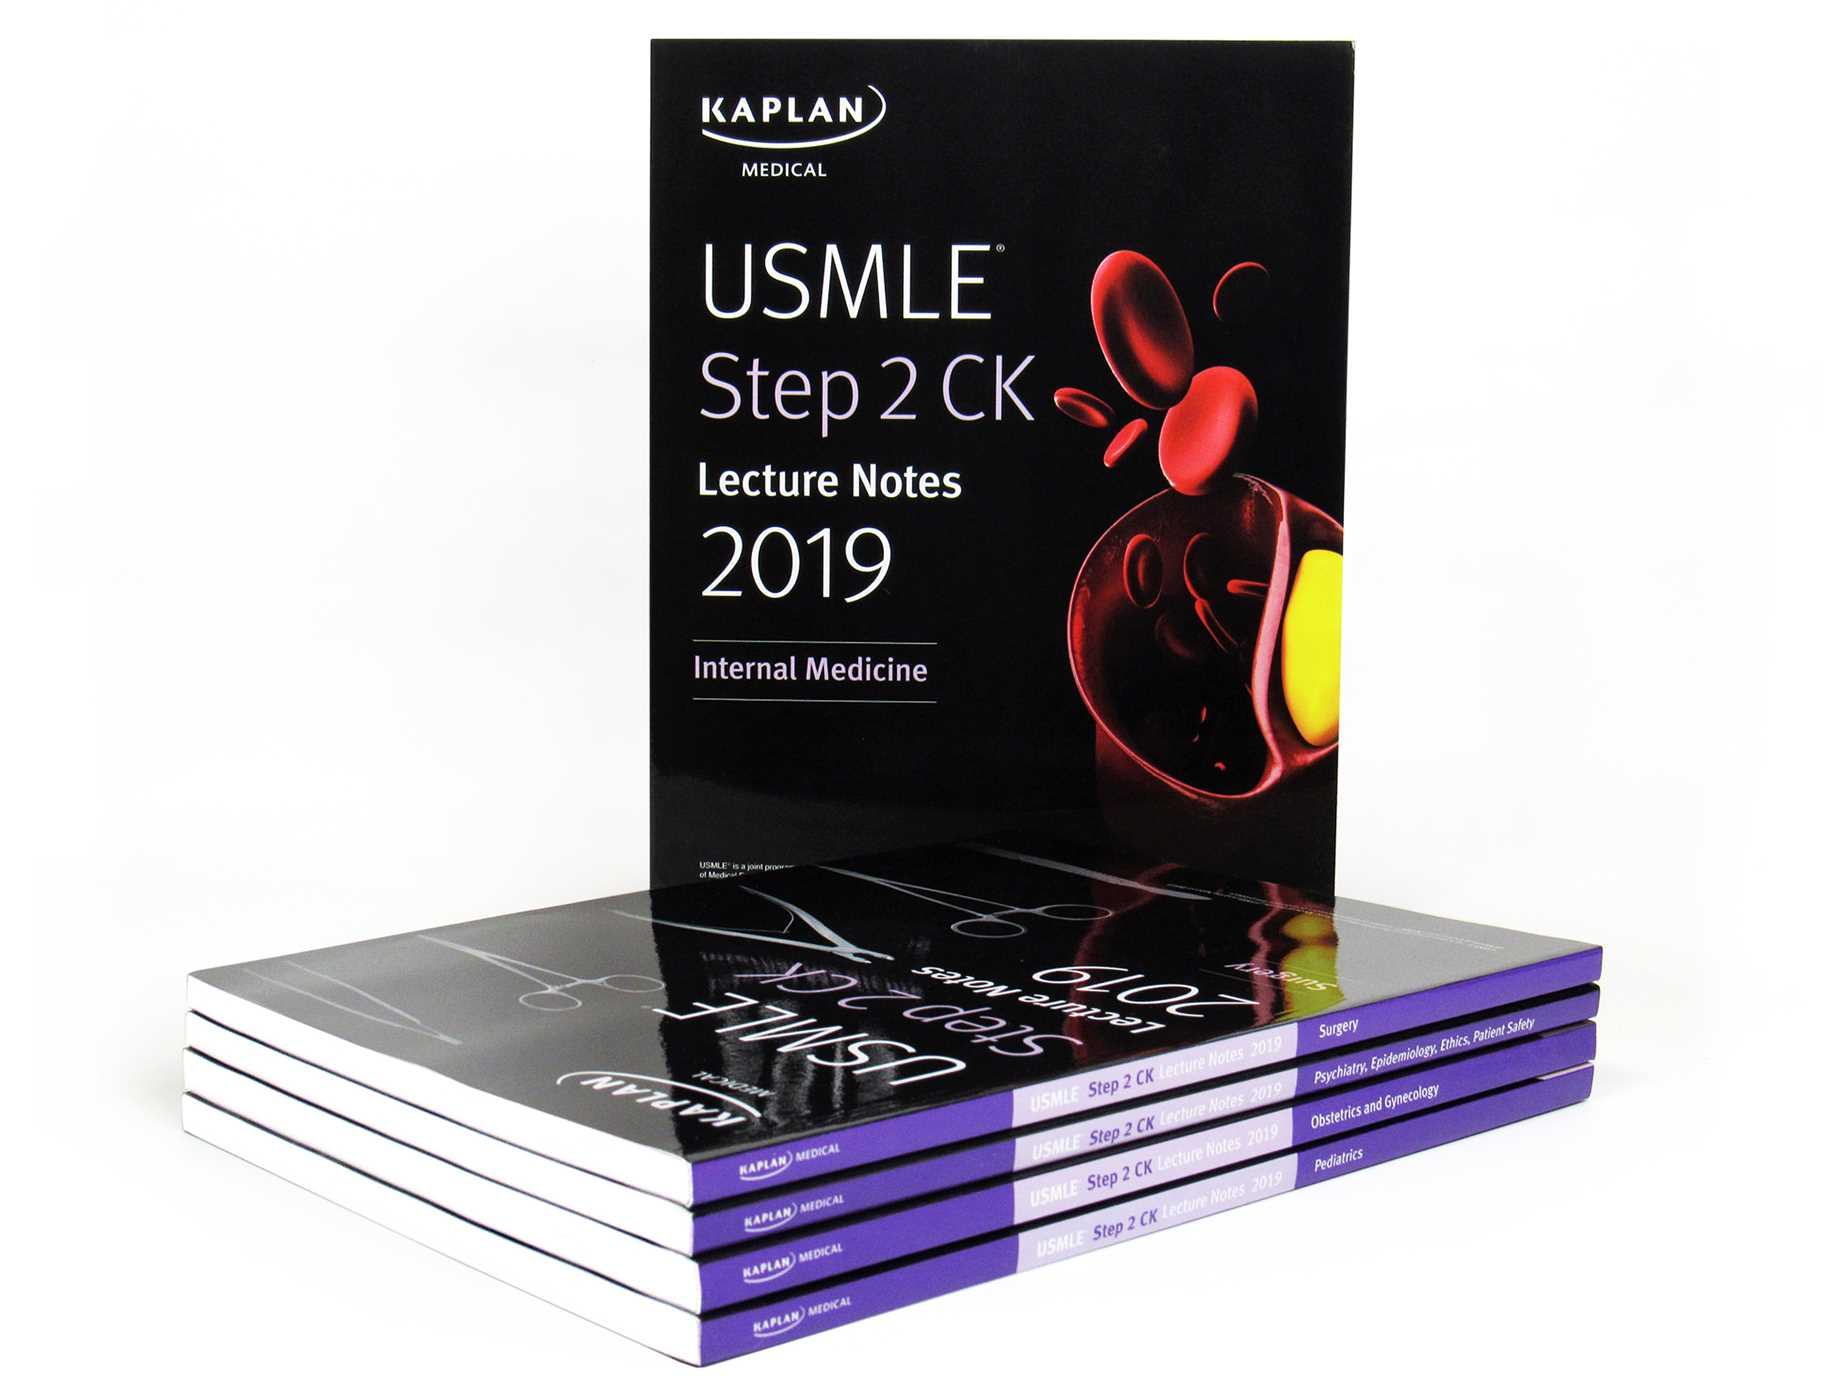 USMLE Step 2 CK Lecture Notes 2019: 5-book set | Book by